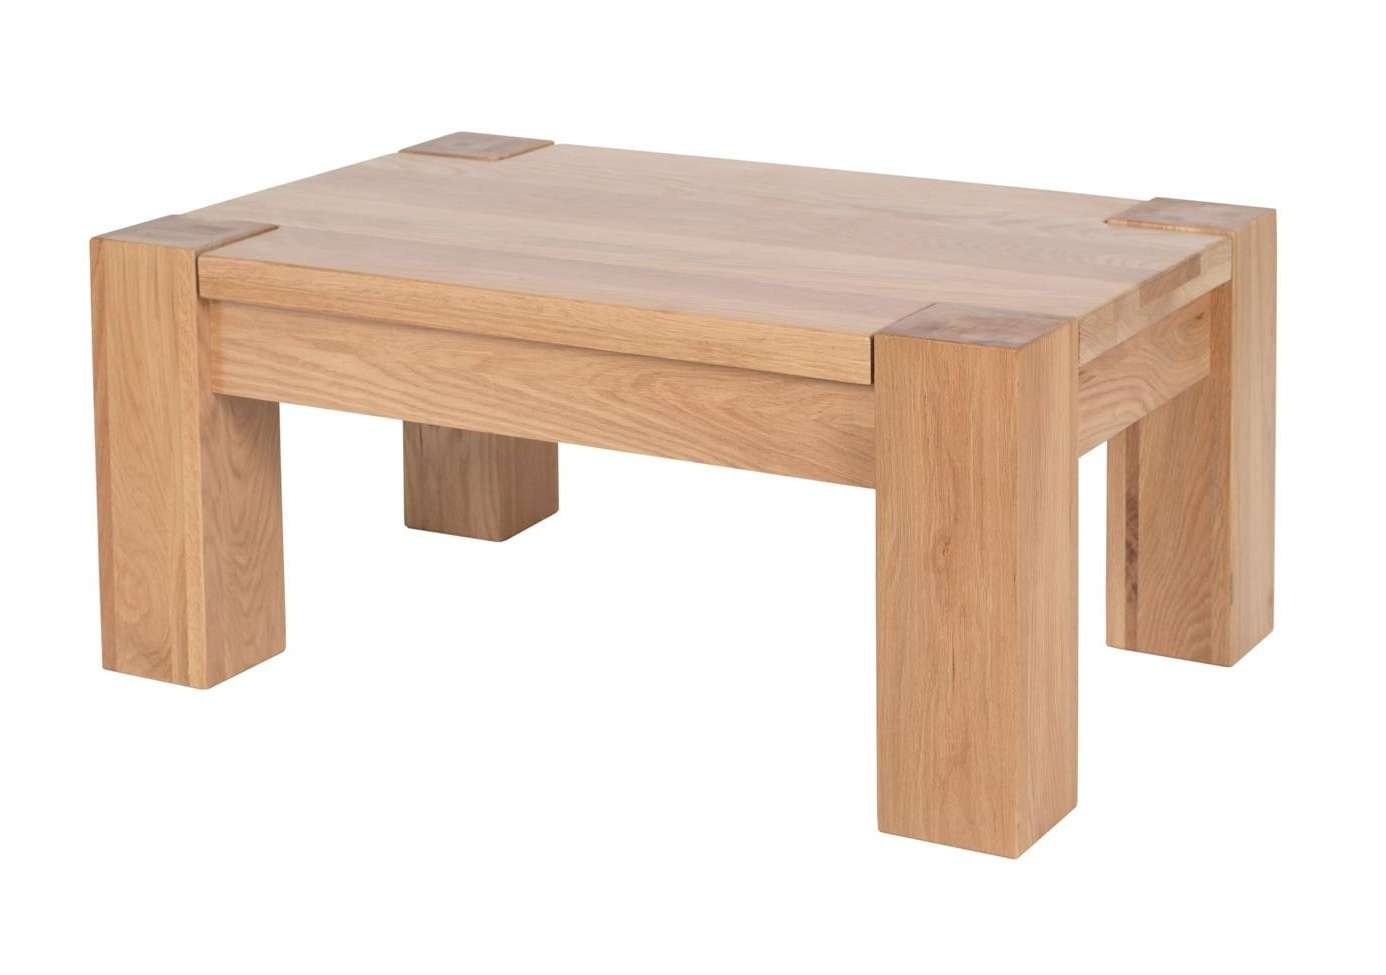 Small Oak Coffee Tables Uk Designing Home Awesome Design Of Small Throughout Preferred Torino Coffee Tables (View 15 of 20)